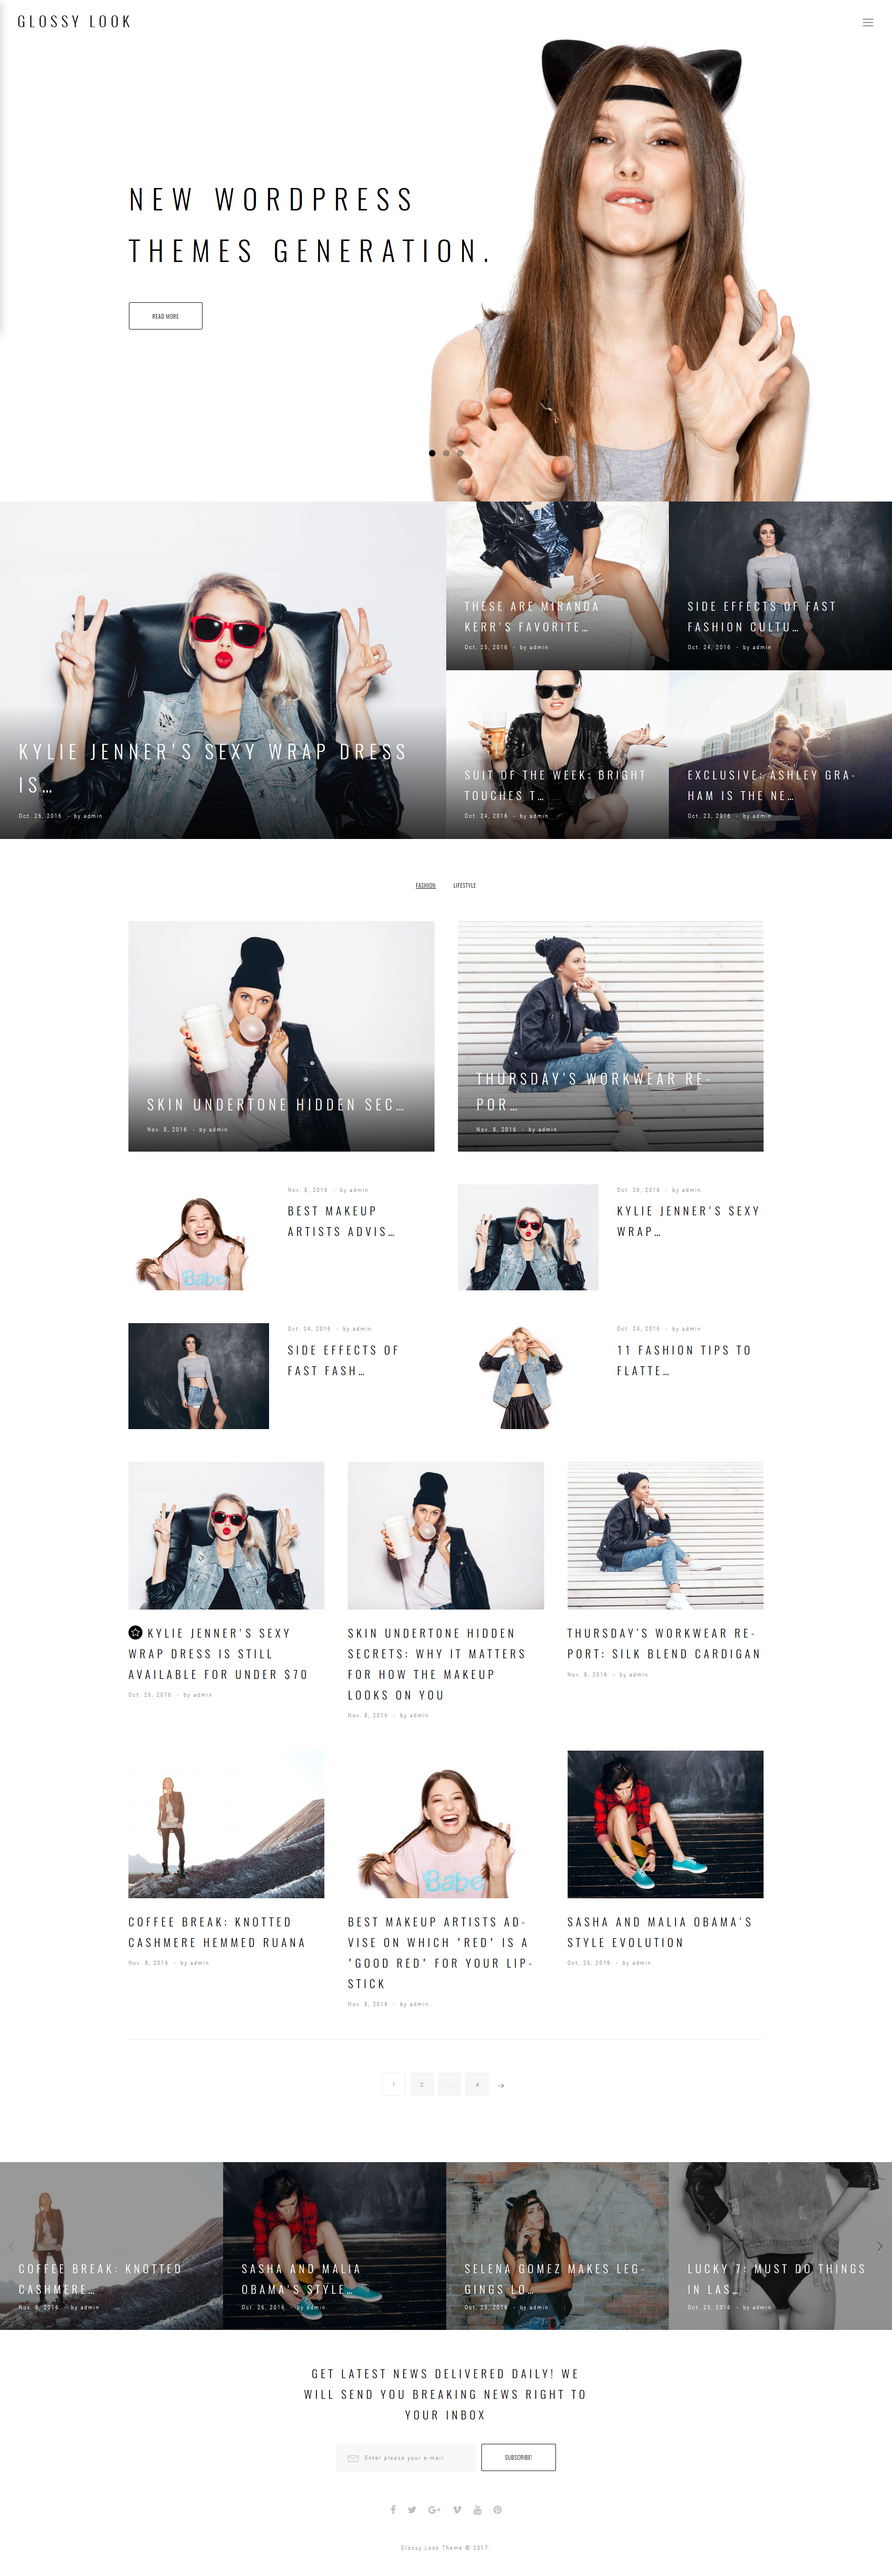 Glossy Look - Lifestyle & Fashion Blog WordPress Theme - screenshot